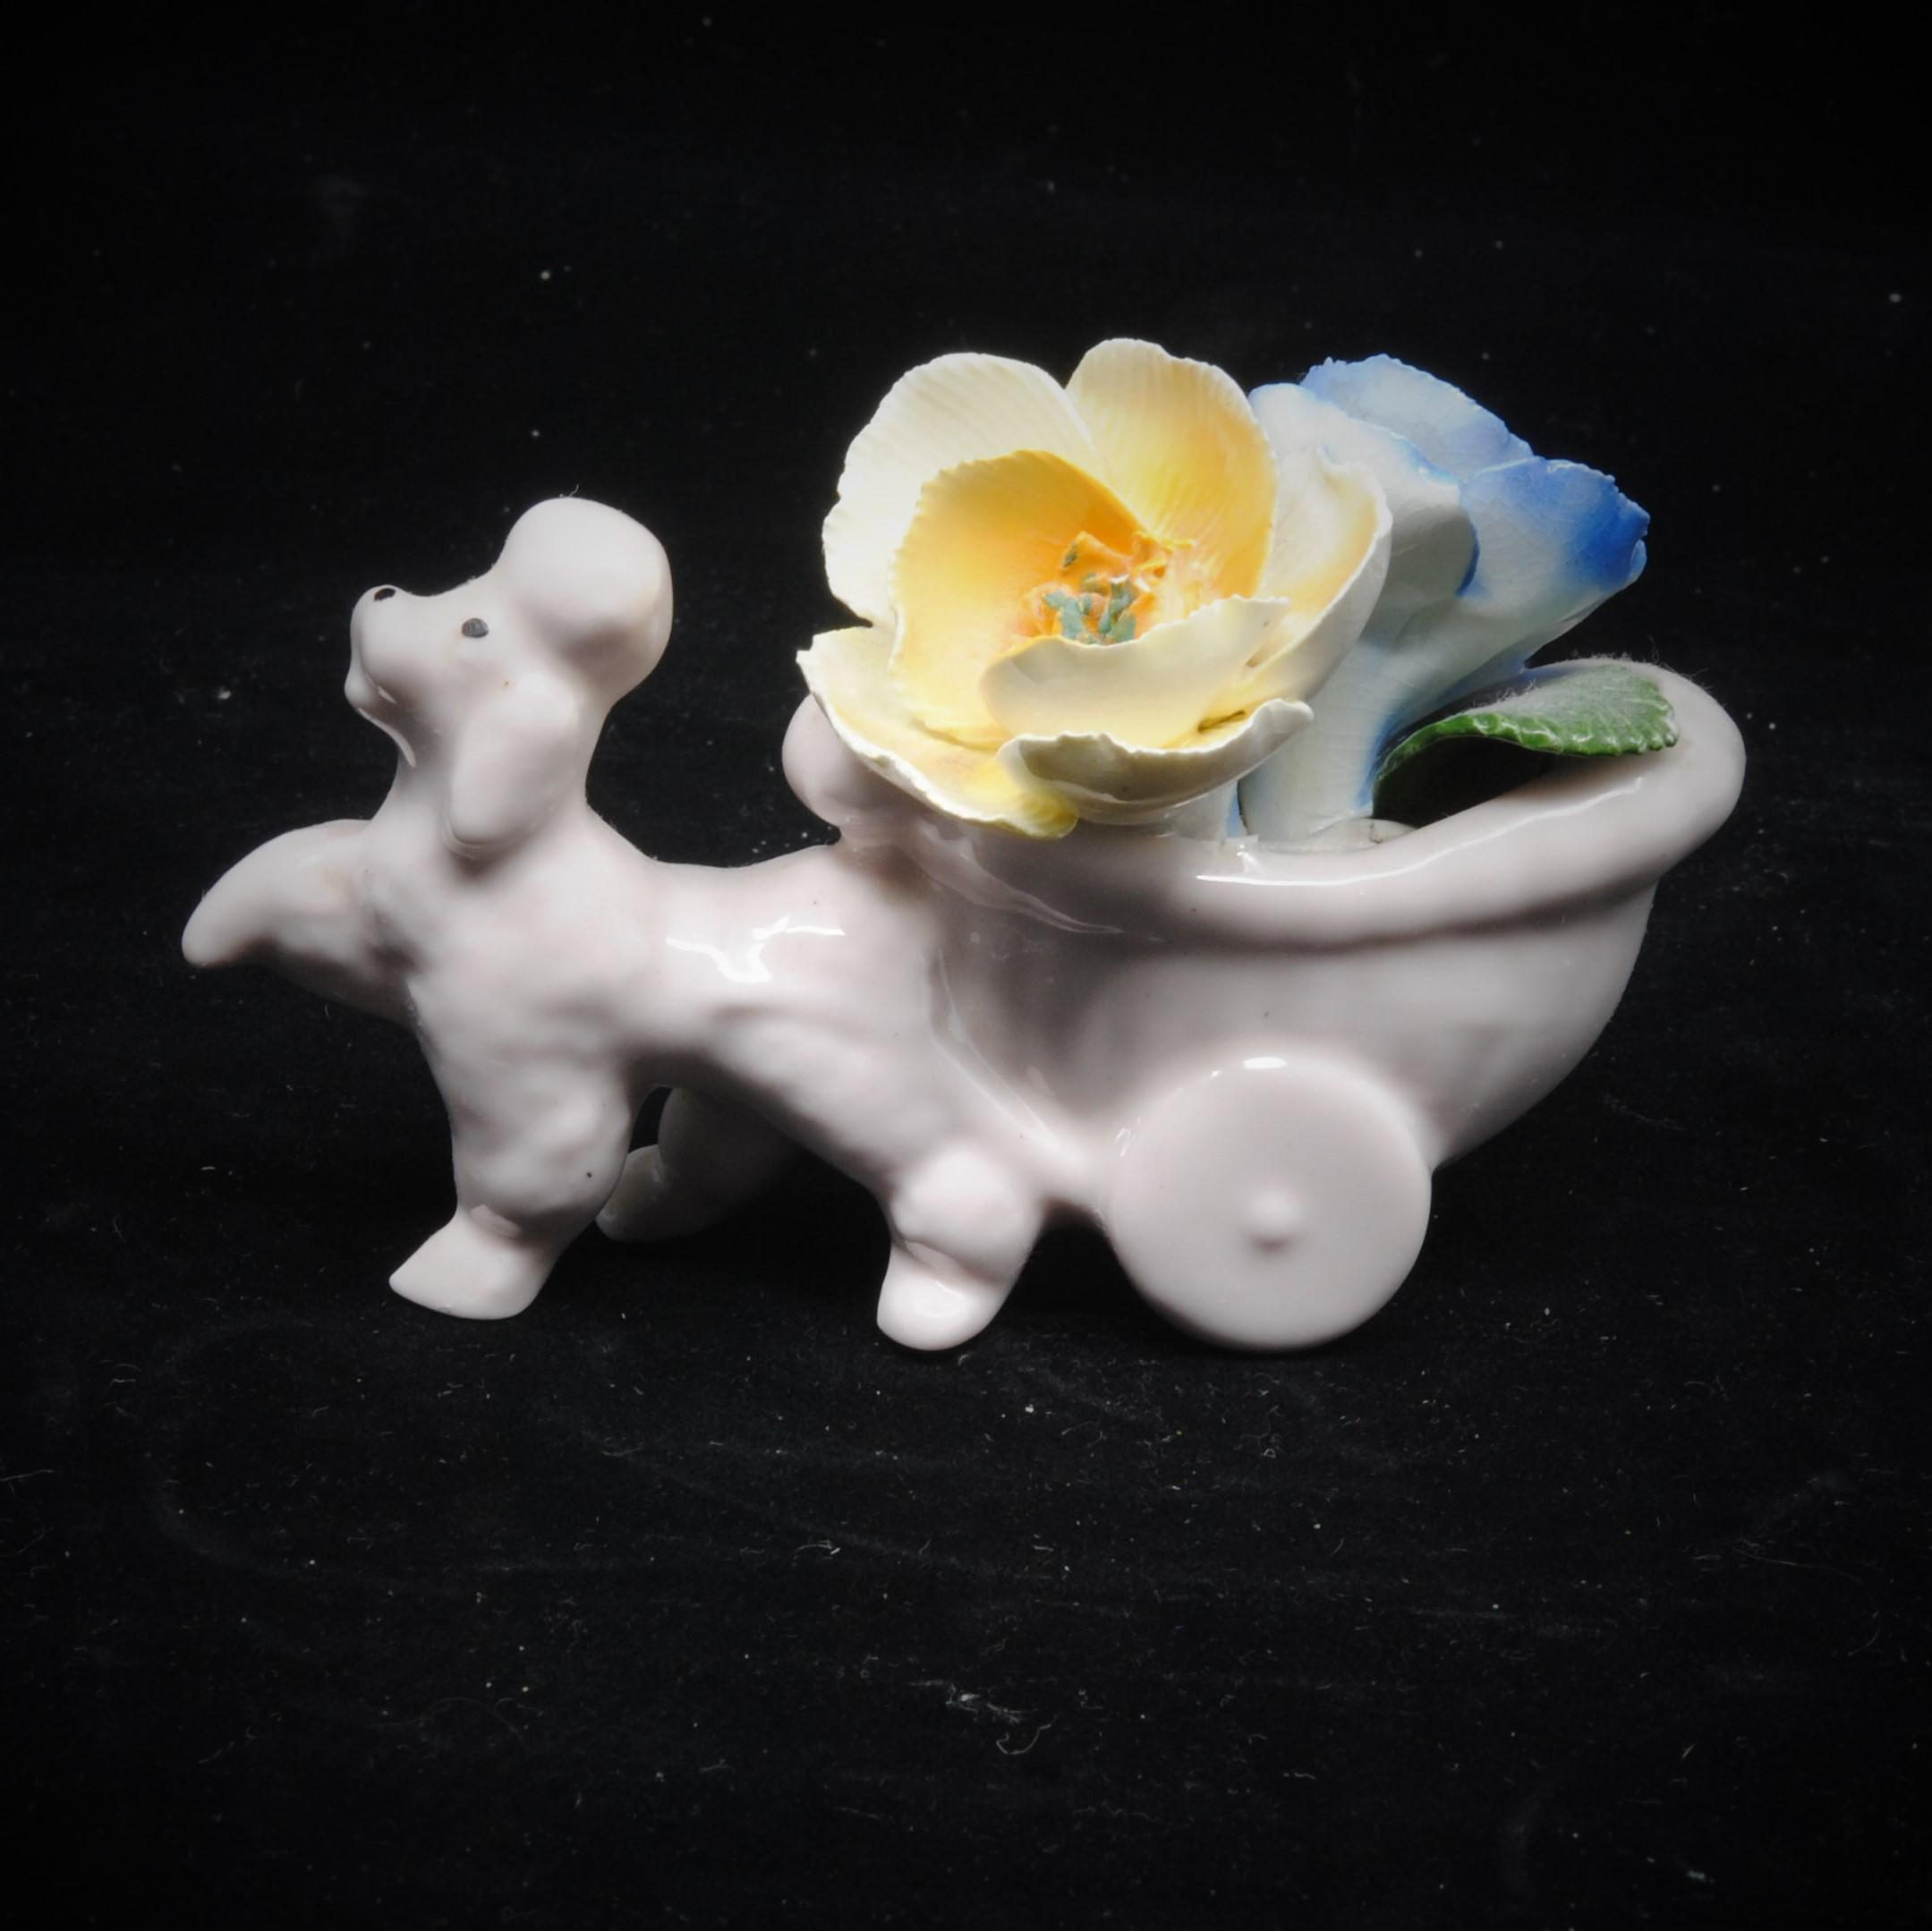 Chorley White Poodle Dog Collectible Figurine